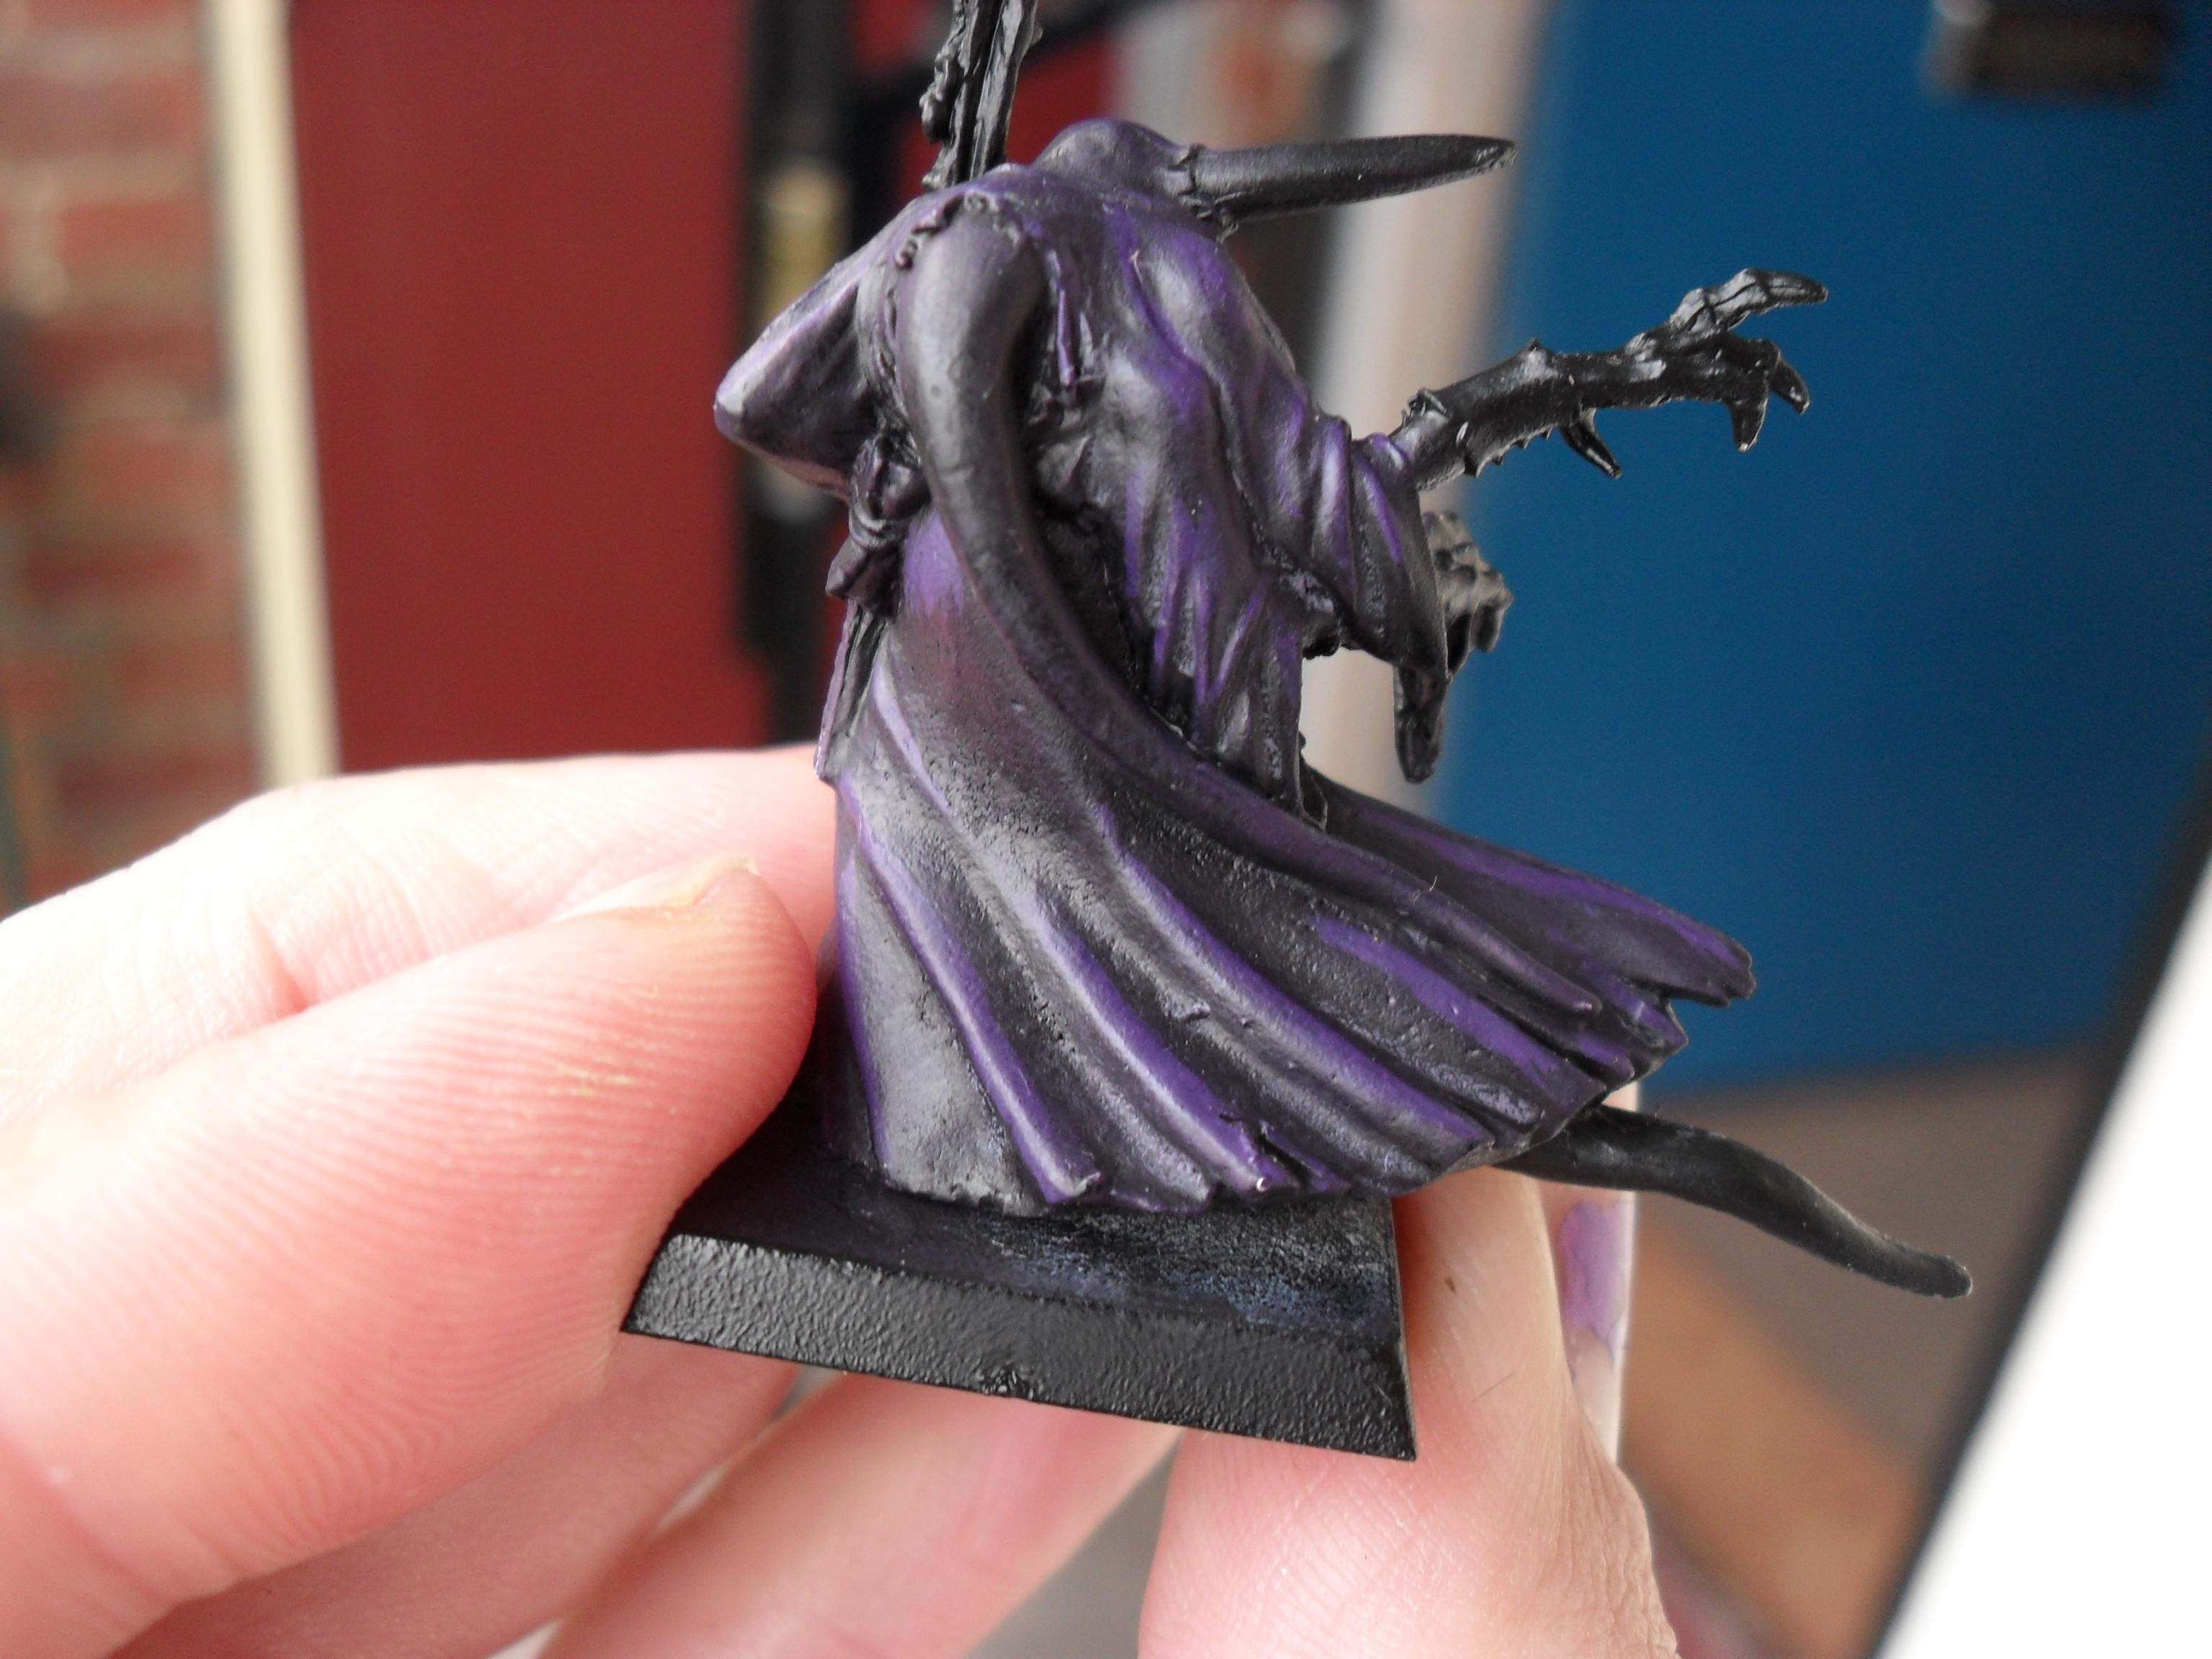 Limited edition chaos sorcerer Death lore WiP 2